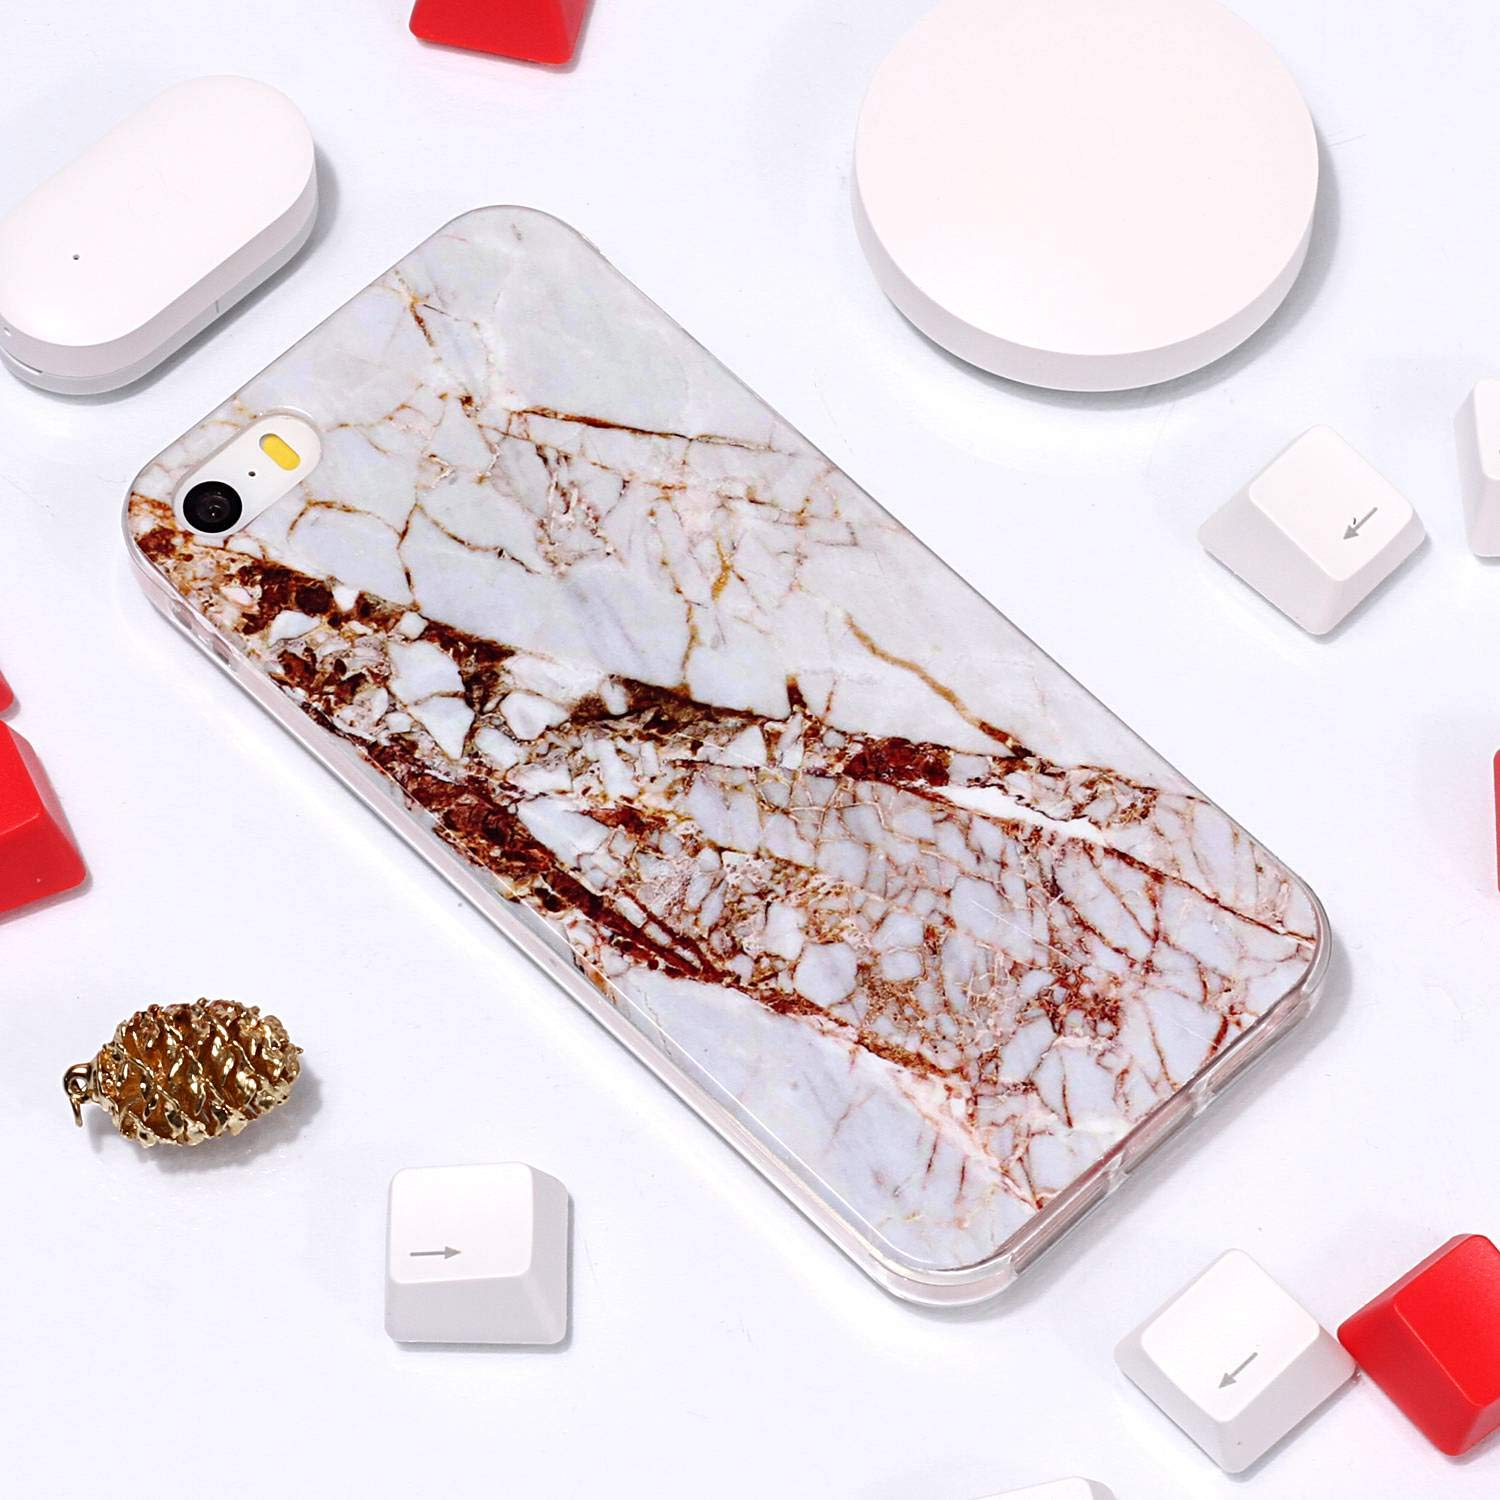 for iPhone 5/5S iPhone SE Marble Case with Screen Protector,Unique Pattern Design Skin Ultra Thin Slim Fit Soft Gel Silicone Case,QFFUN Shockproof Anti-Scratch Protective Back Cover - White by QFFUN (Image #4)